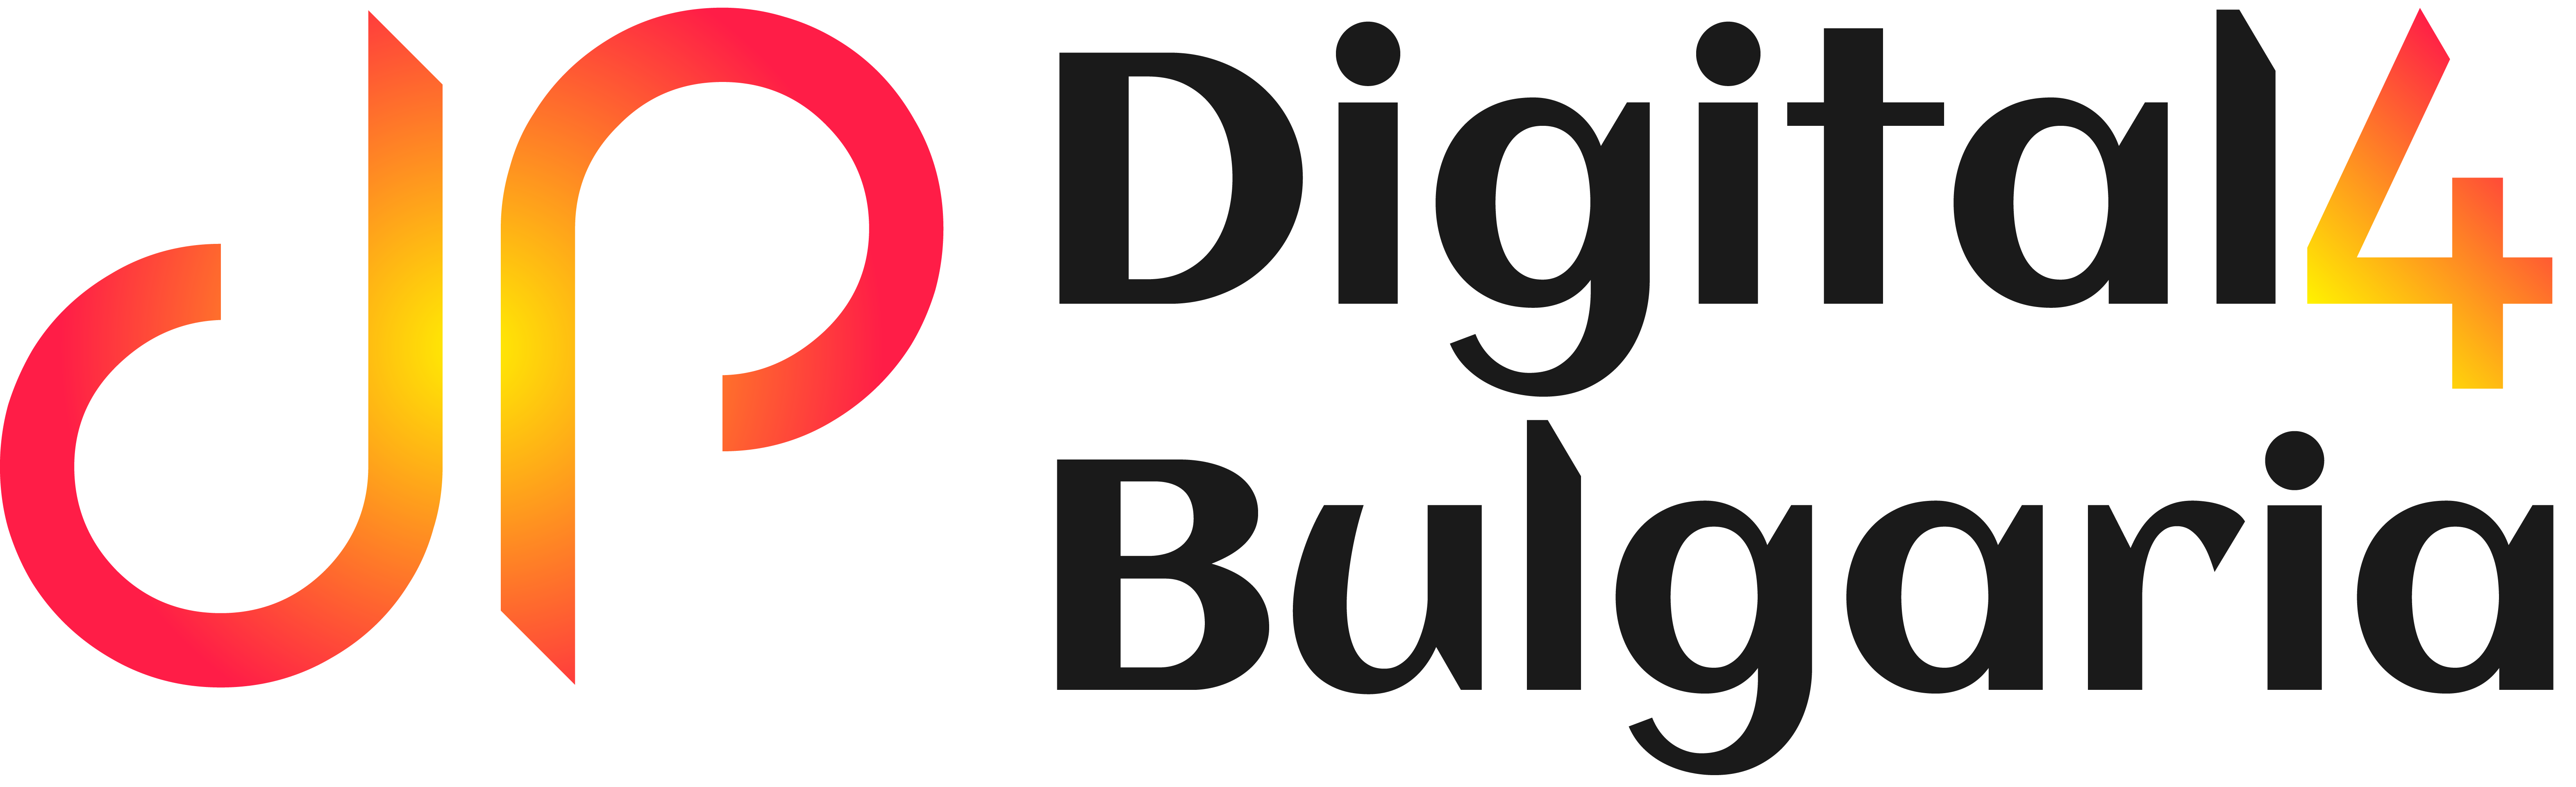 Digital4Bulgaria